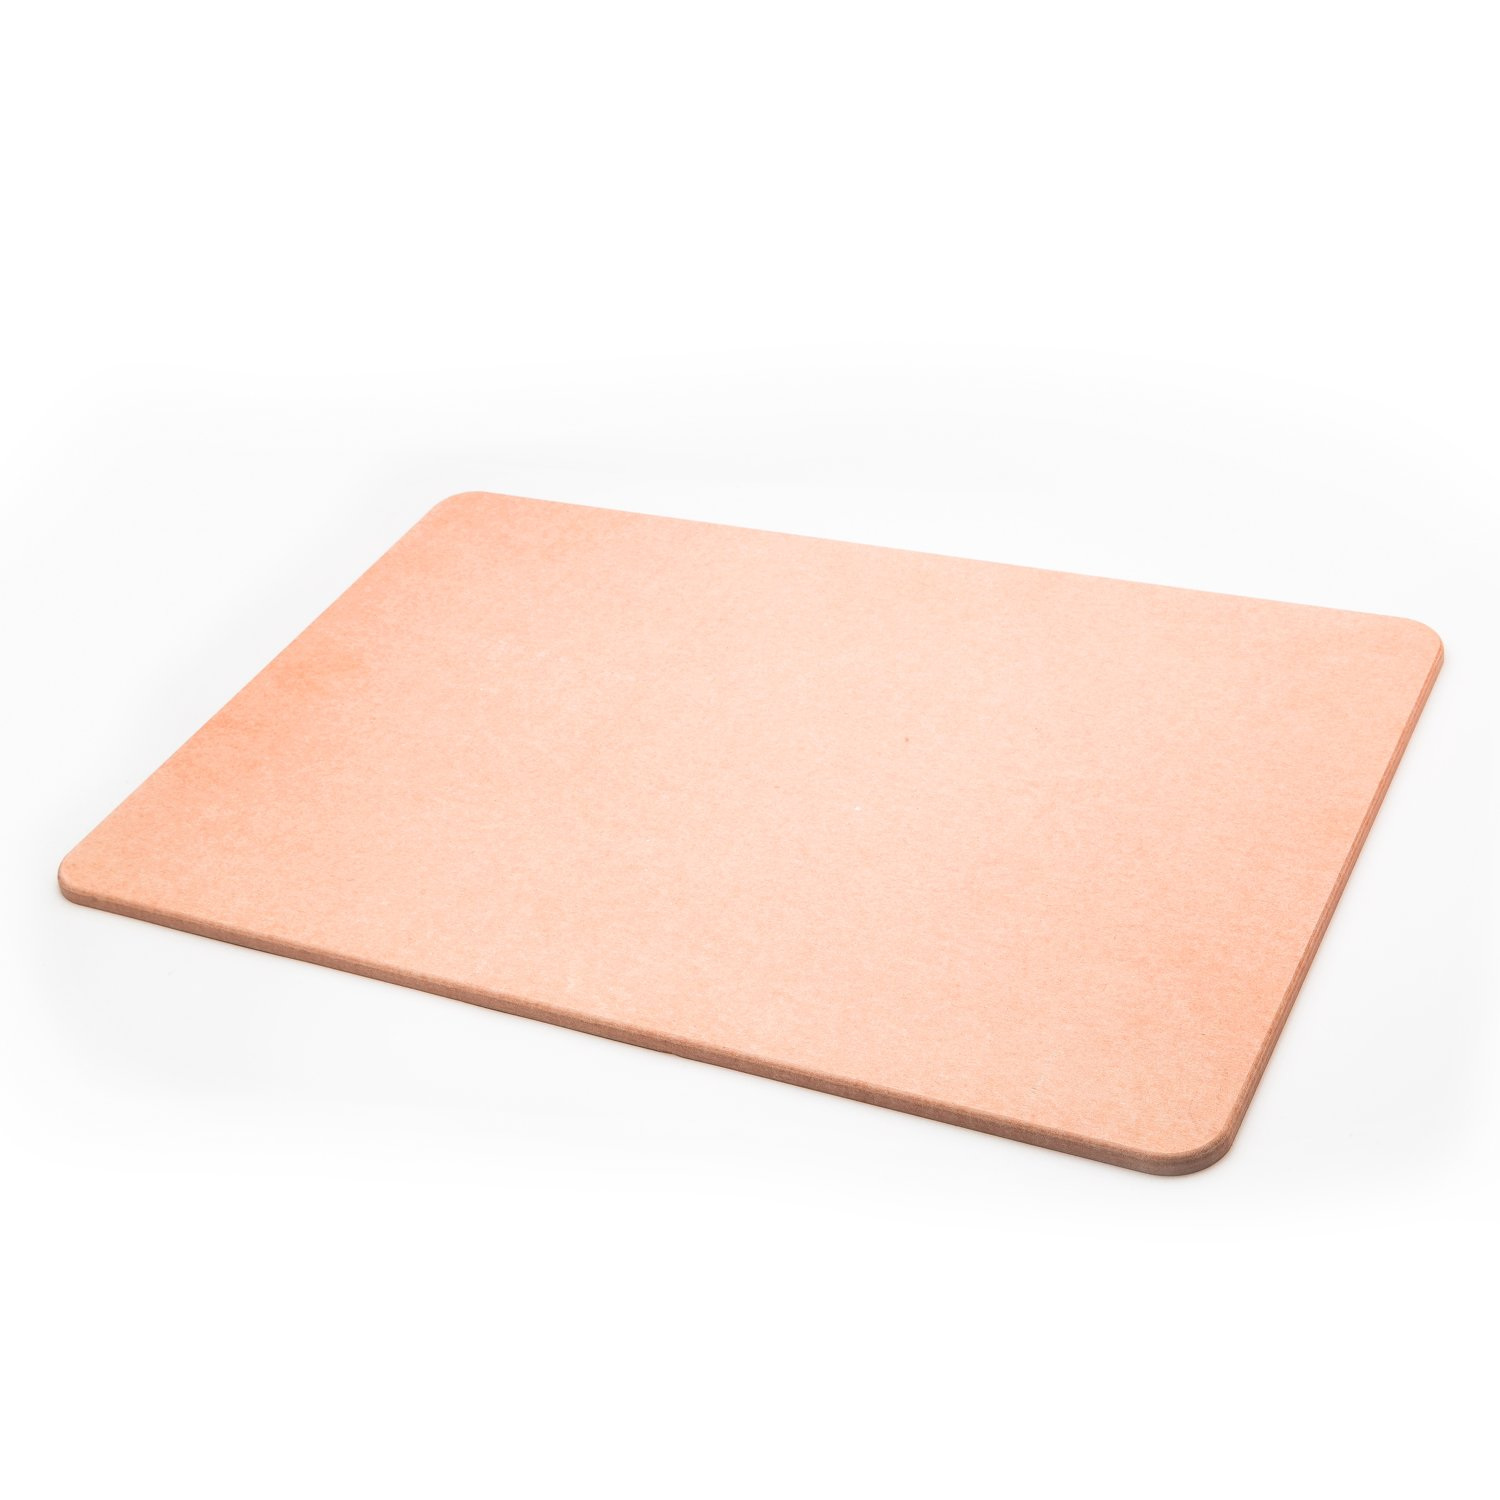 Diatomaceous Earth Bath Mat | Antibacterial Deodorant and Non-slip | Absorbent and Quick Drying | Japanese Design Perfect for Bathroom / Shower Floor (Pink 24-Inch-by-15-Inch) by David & D